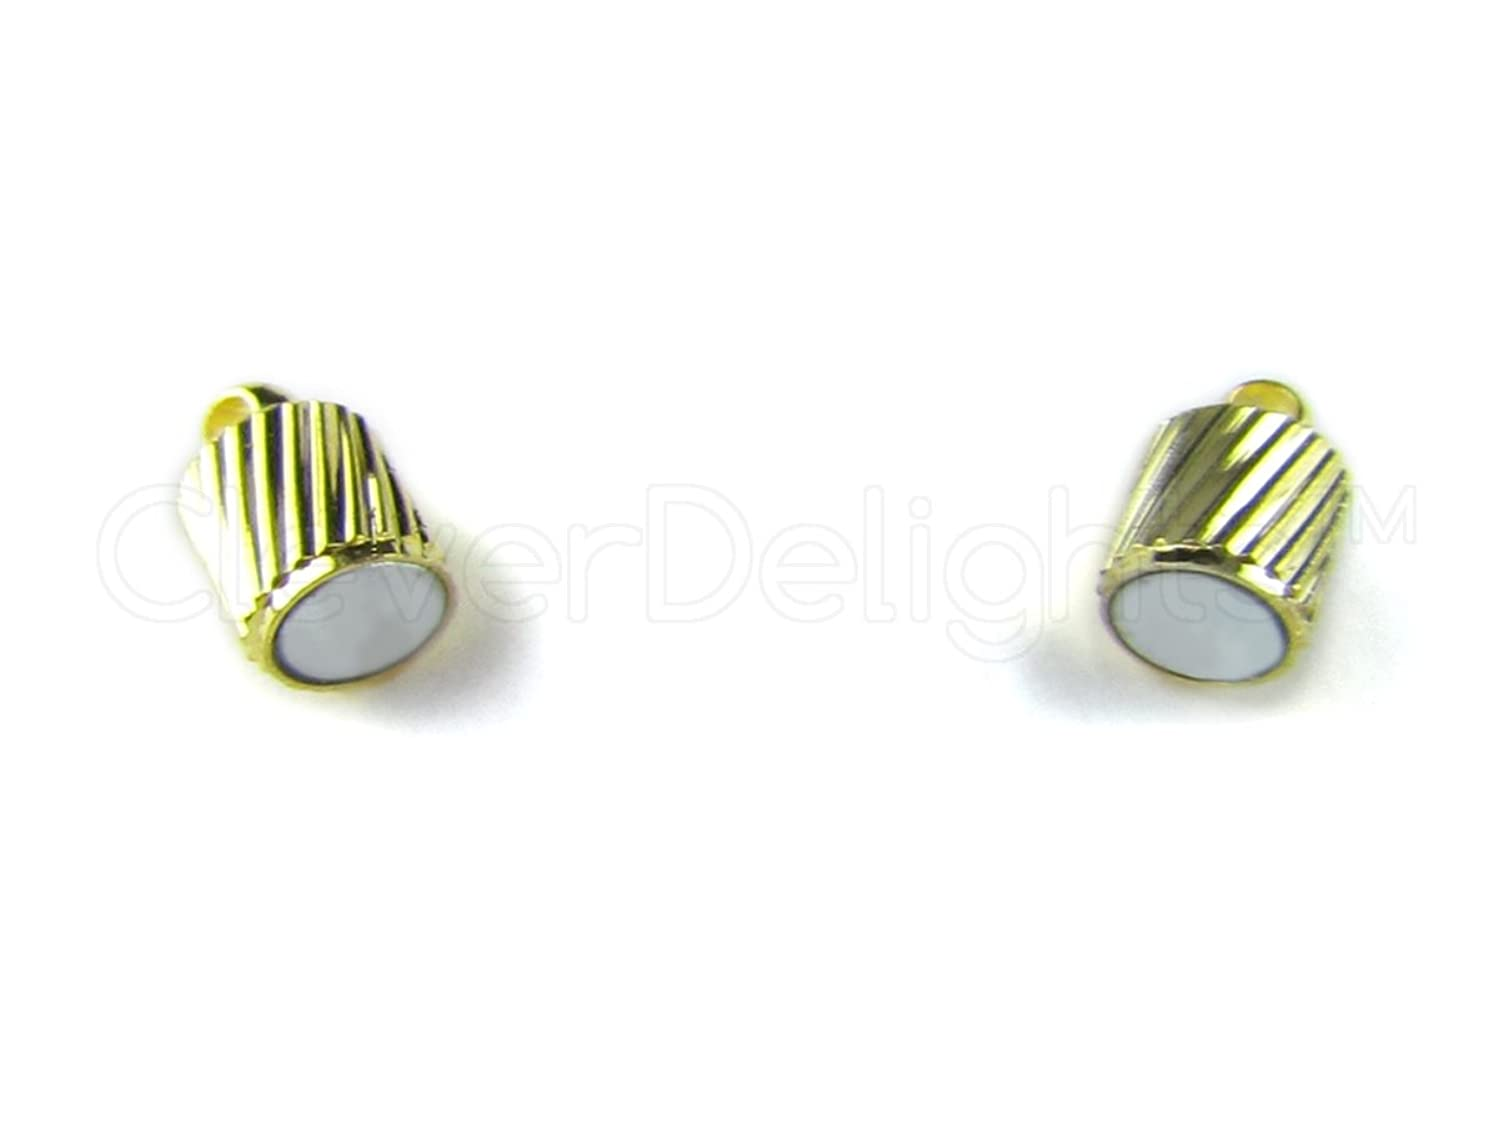 CleverDelights 20 Magnetic Jewelry Clasps - Spiral Style - Gold Color - Necklace Magnet Clasp Converter